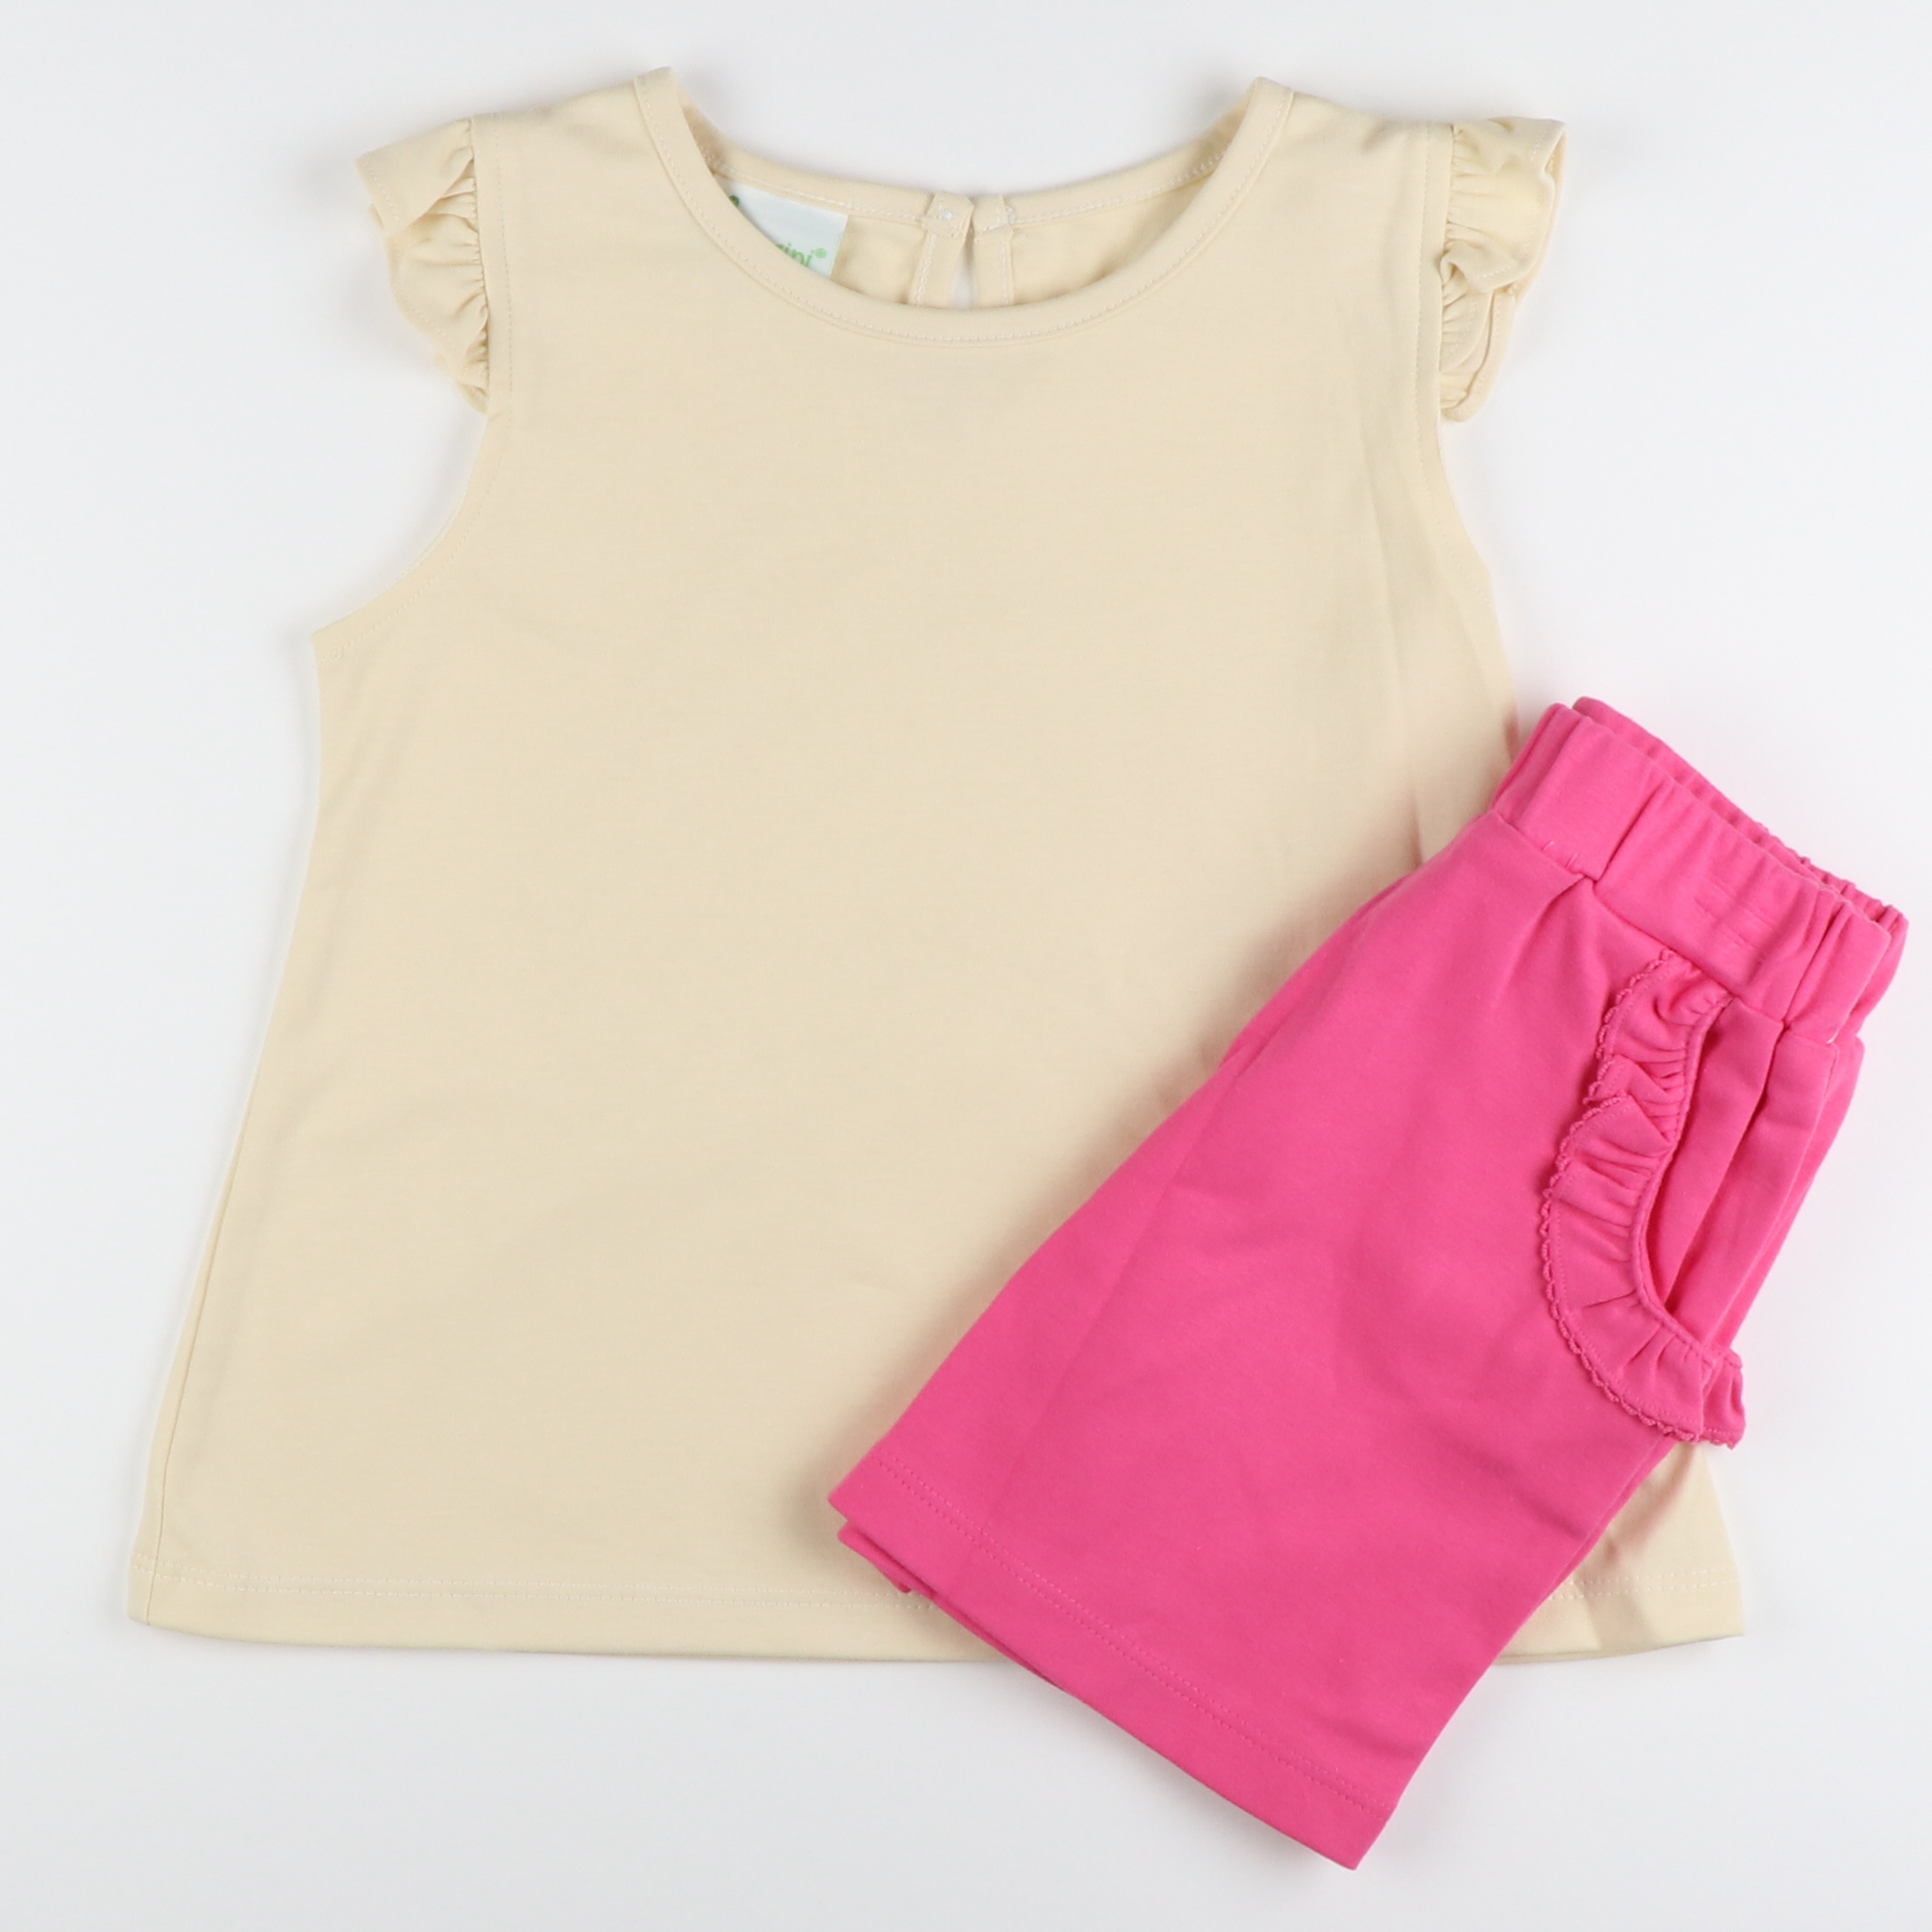 Khaki Top & Pink Short Set